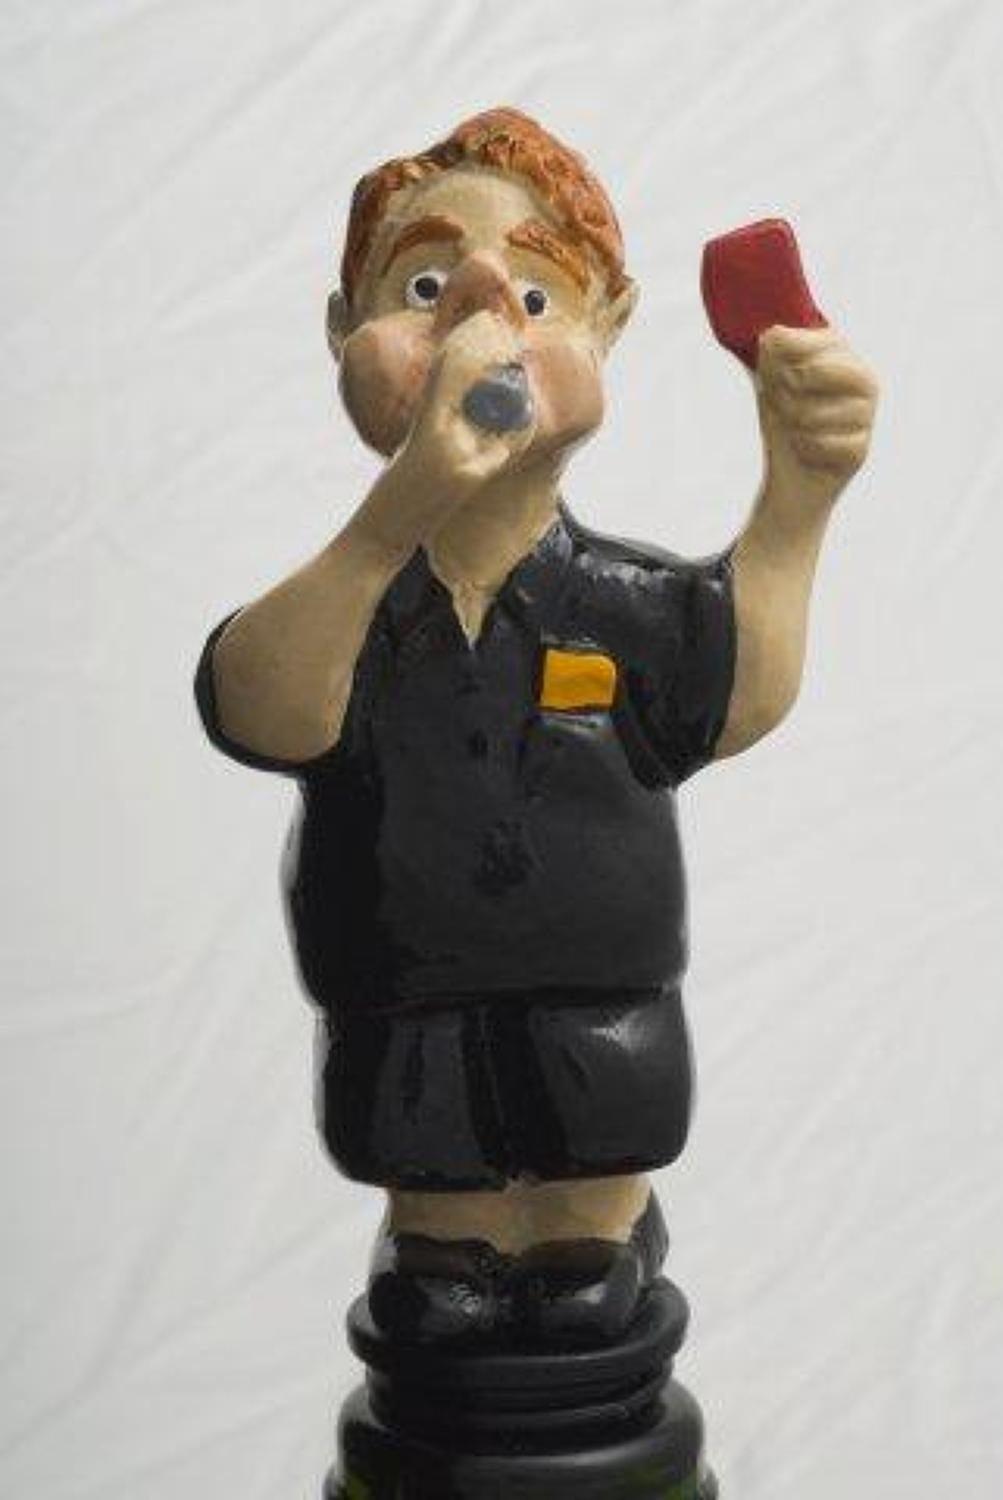 Referee bottle stopper